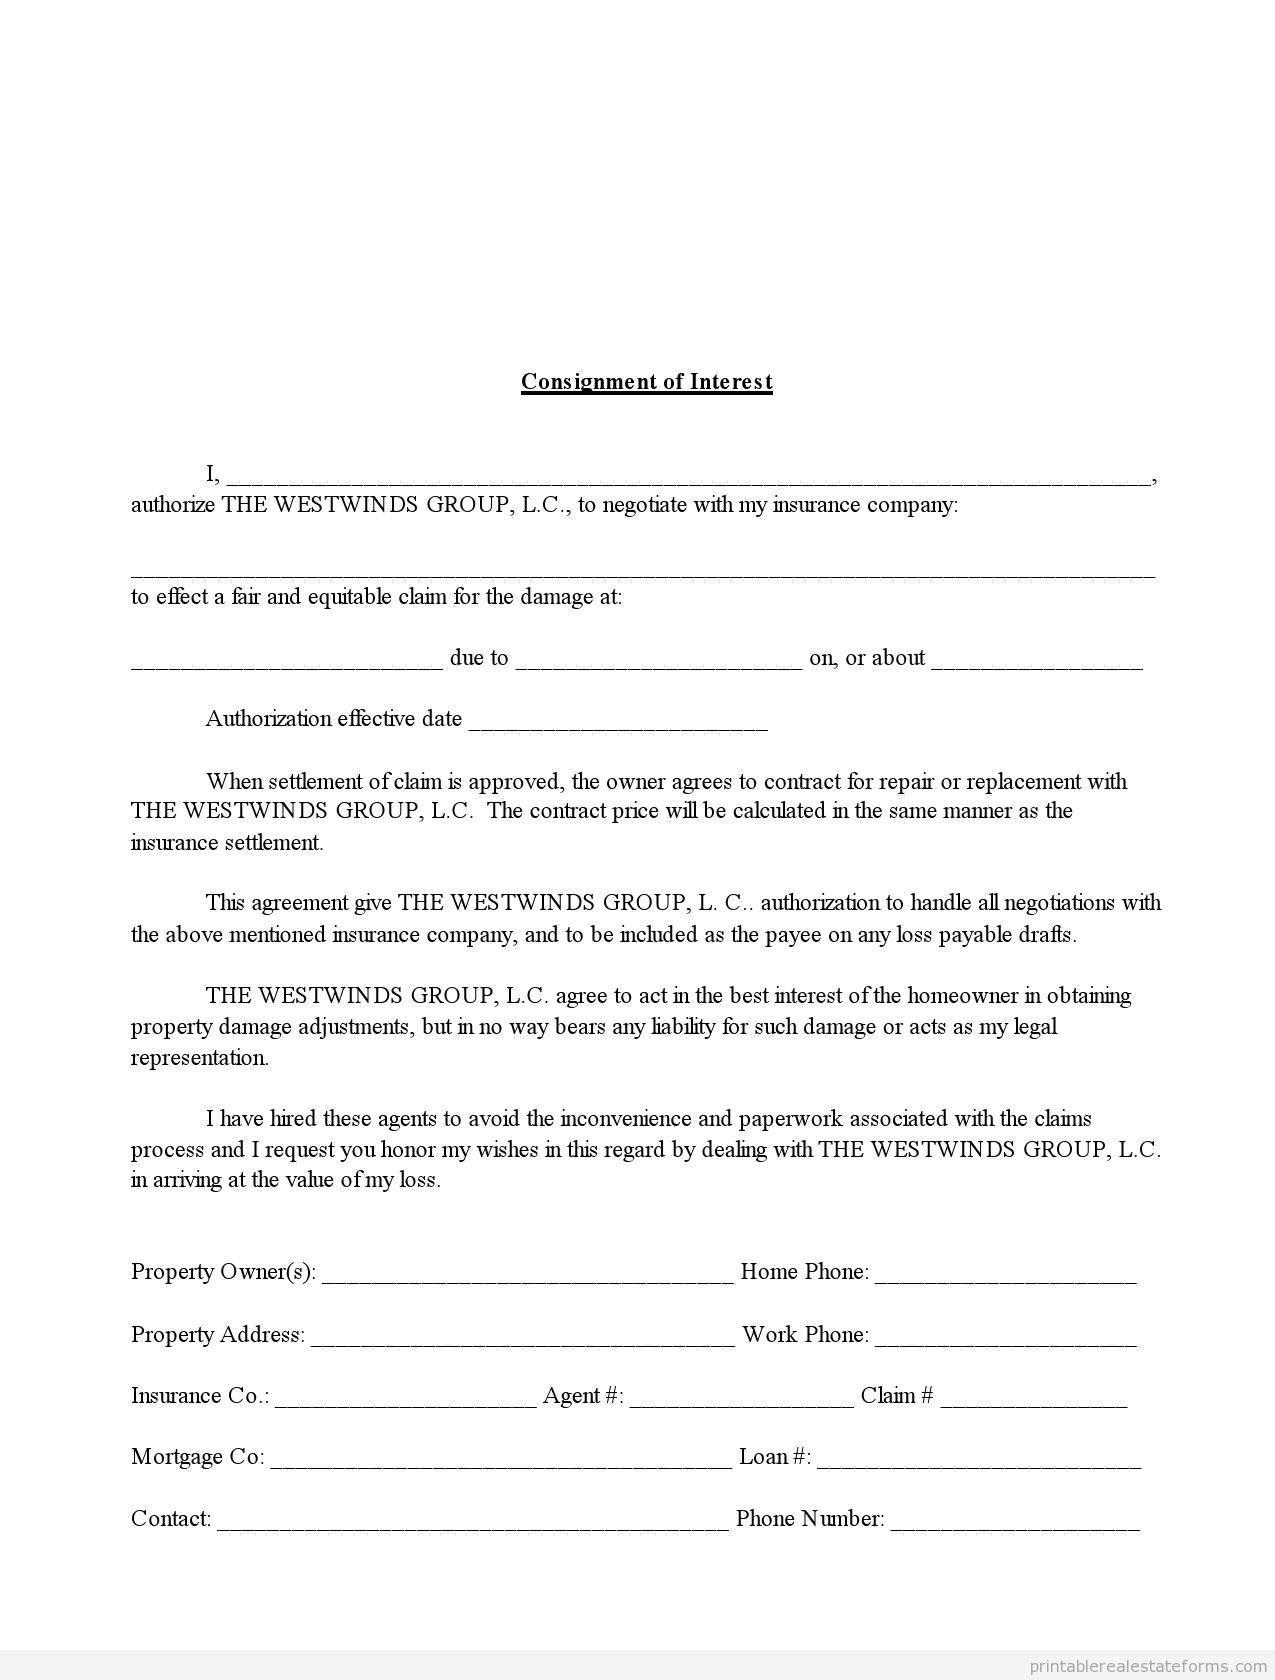 Consignment Of Interest In Insurance Claim Sample Pdf Word